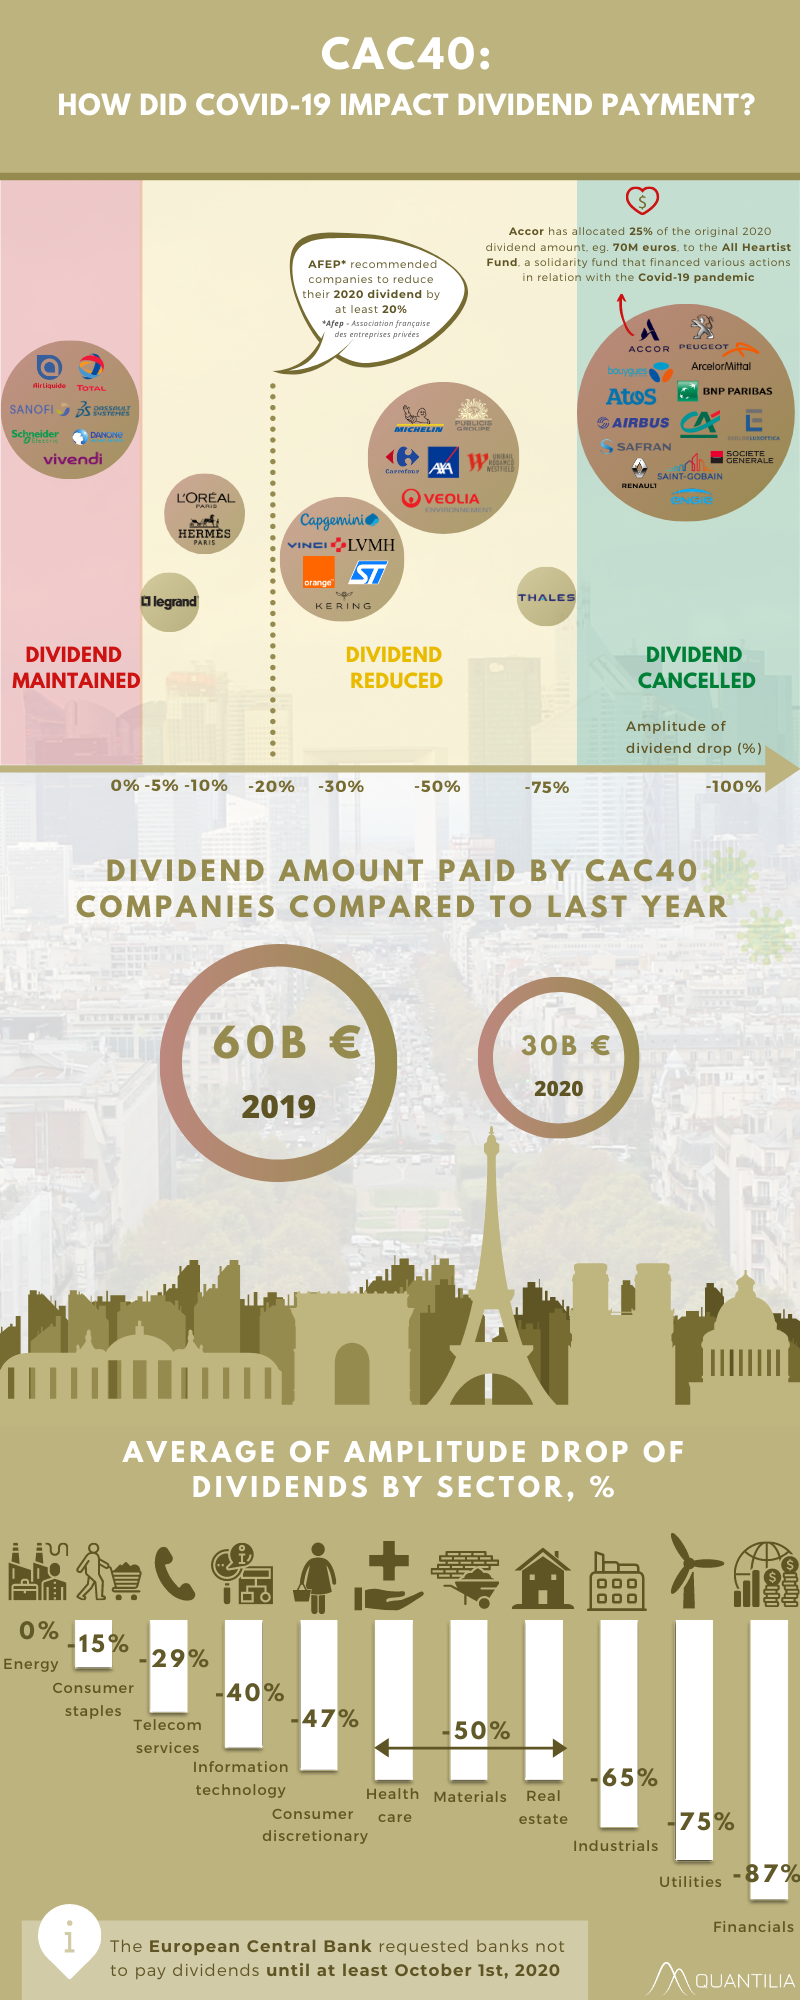 How did Covid-19 impact dividend payment